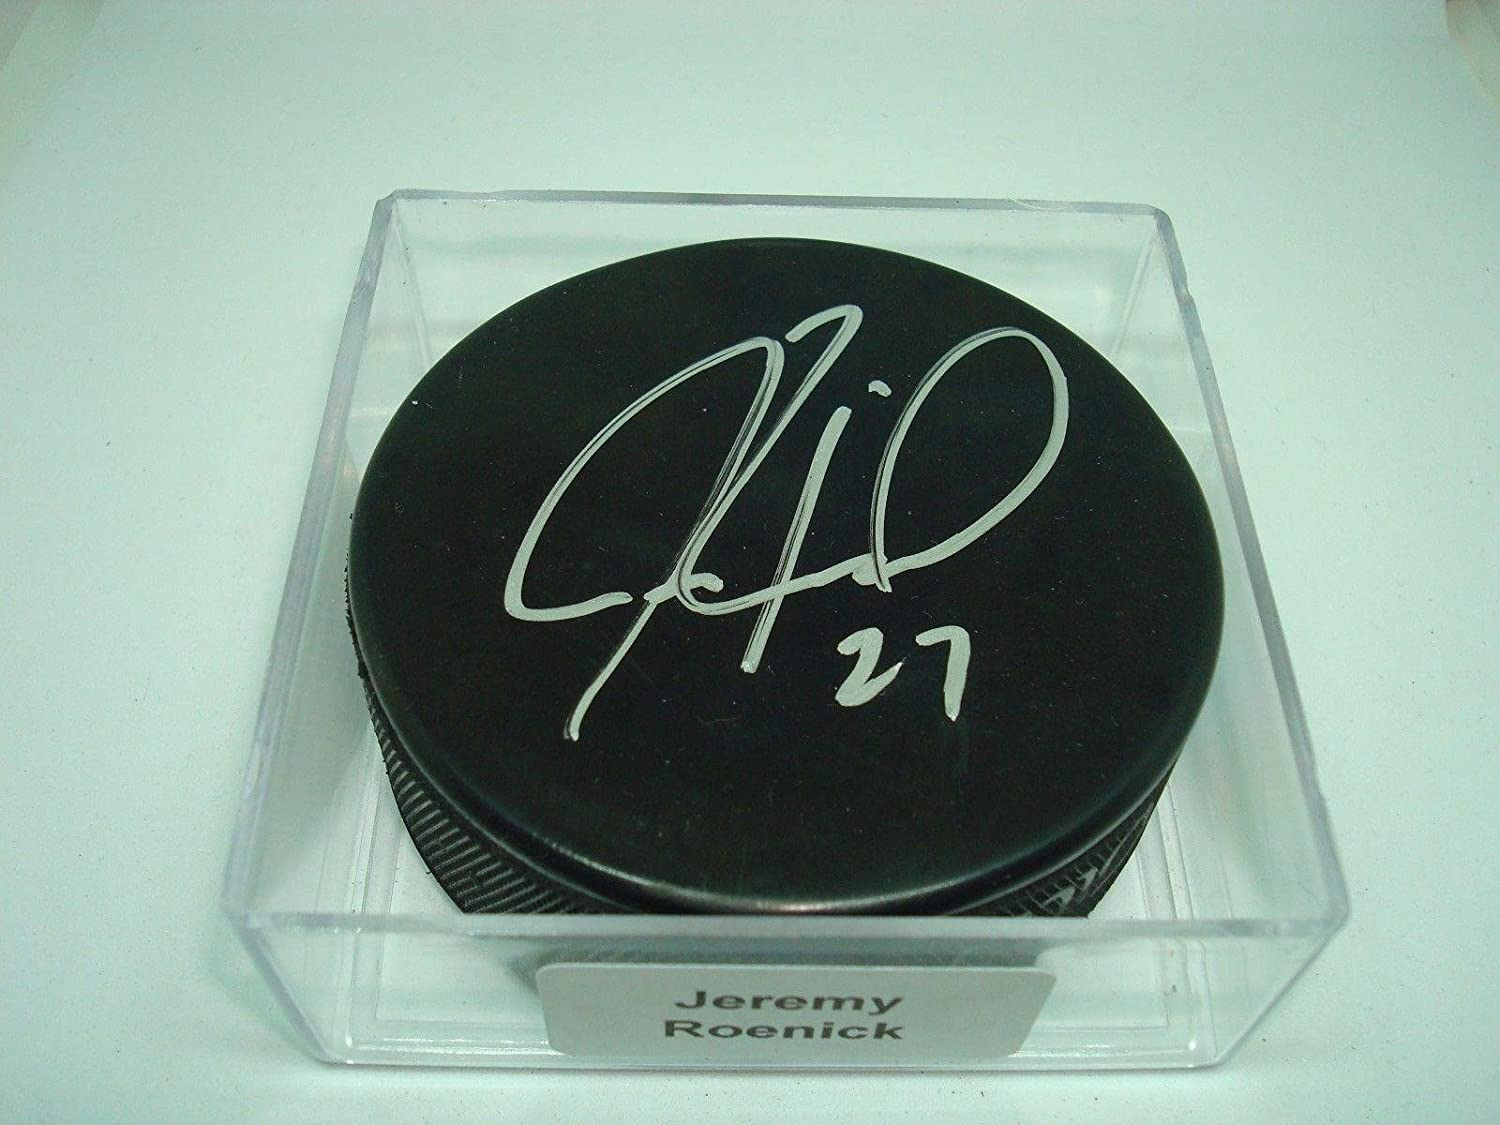 Jeremy Roenick Signed Hockey Puck Blackhawks Flyers Sharks Kings Coyotes 1A  Autographed NHL Pucks